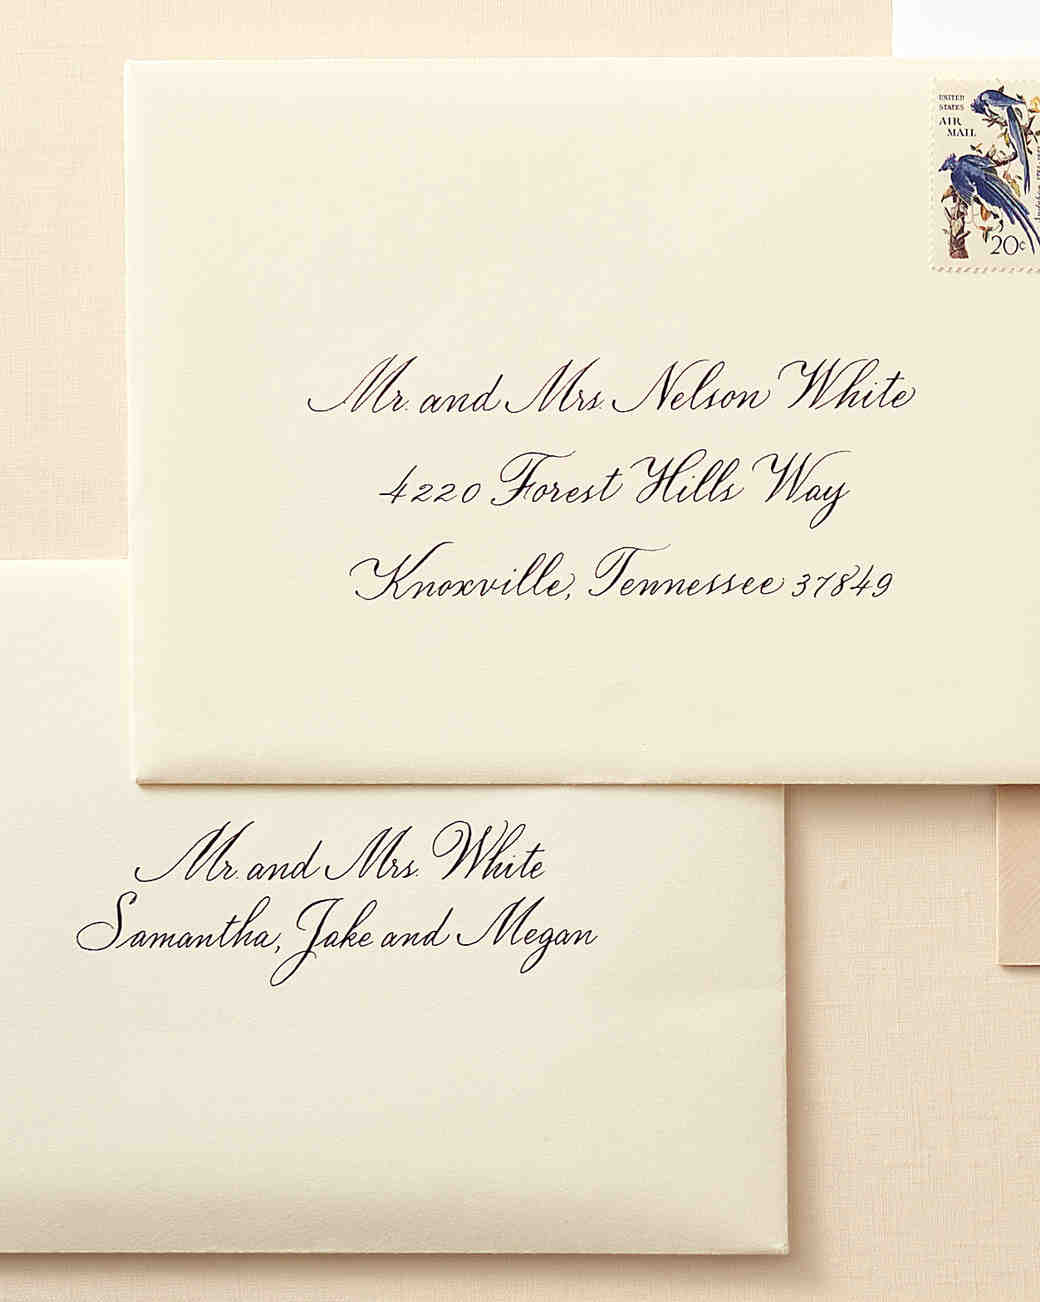 How to address guests on wedding invitation envelopes for Order in wedding invitation envelope